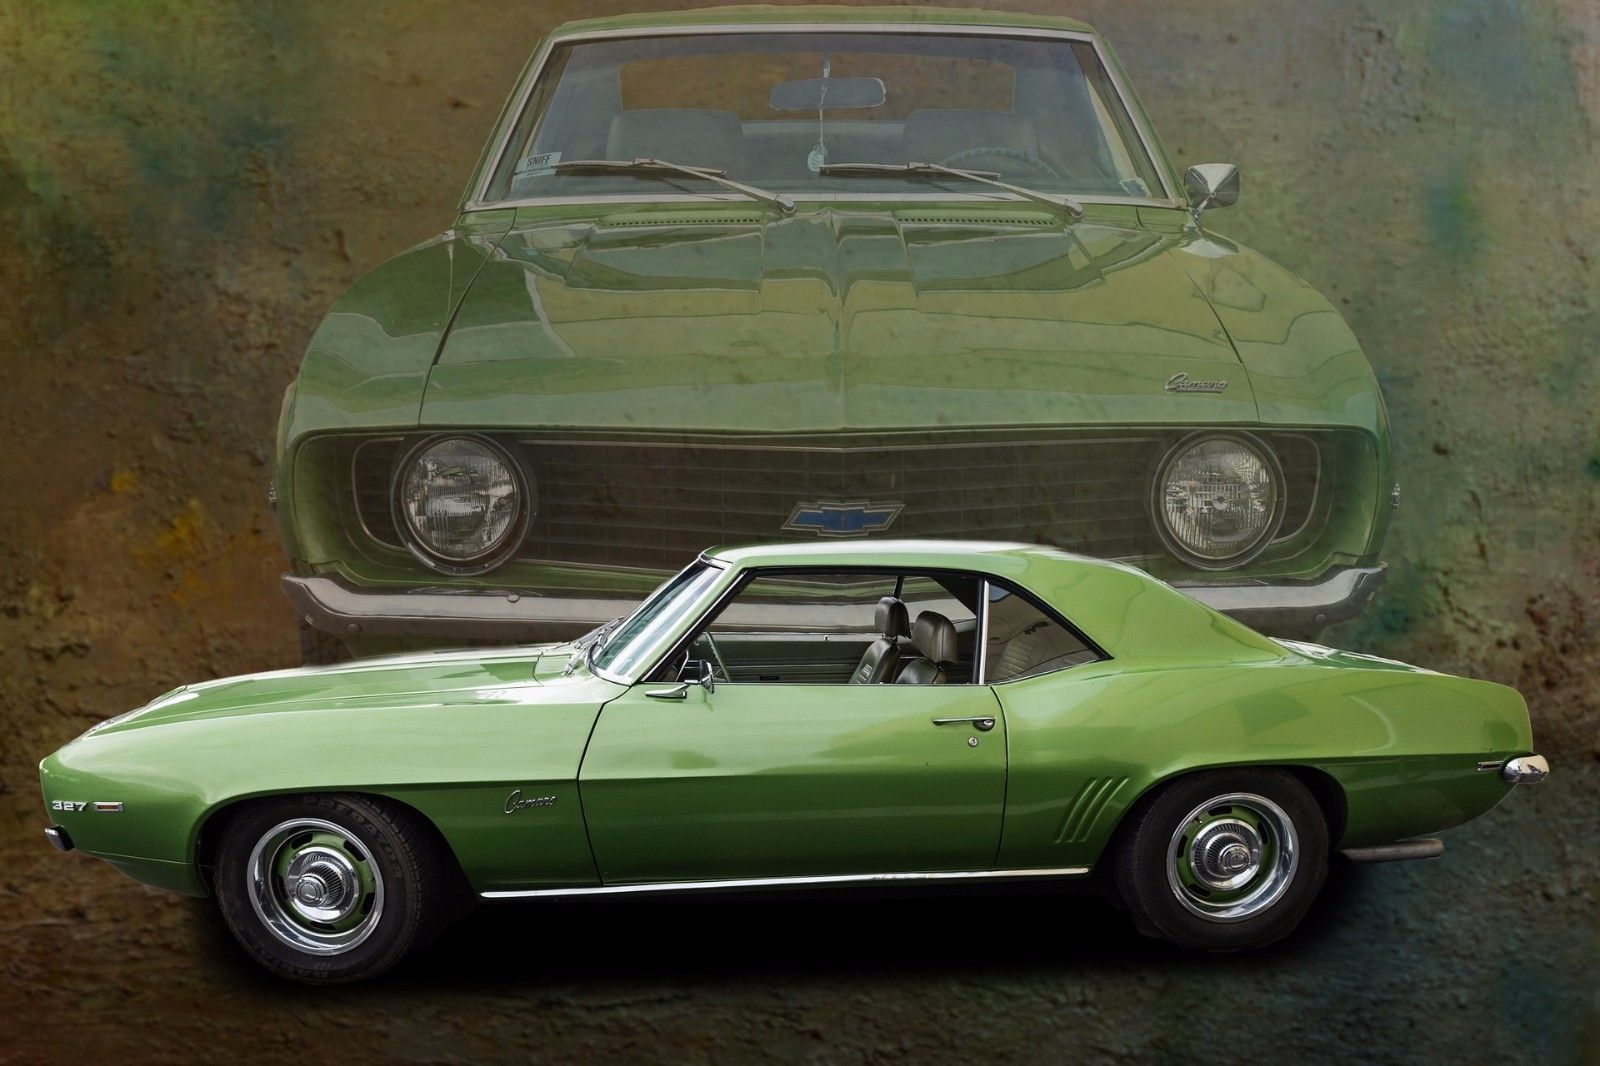 Primary image for 1967 Camaro green 24X36 inch poster, sports car, muscle car